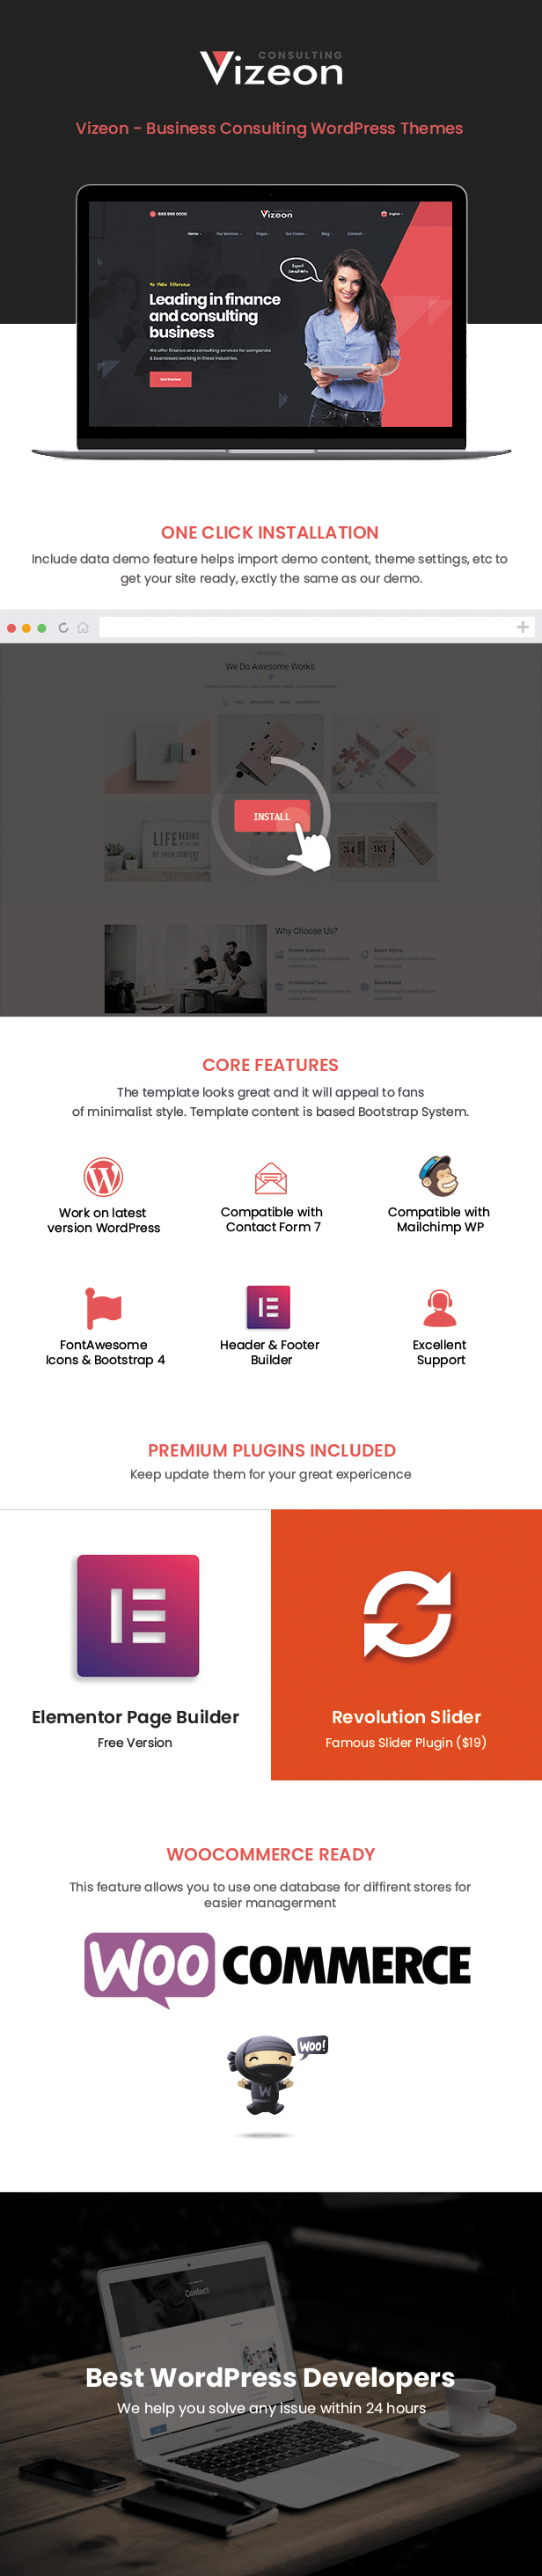 Vizeon WordPress Theme